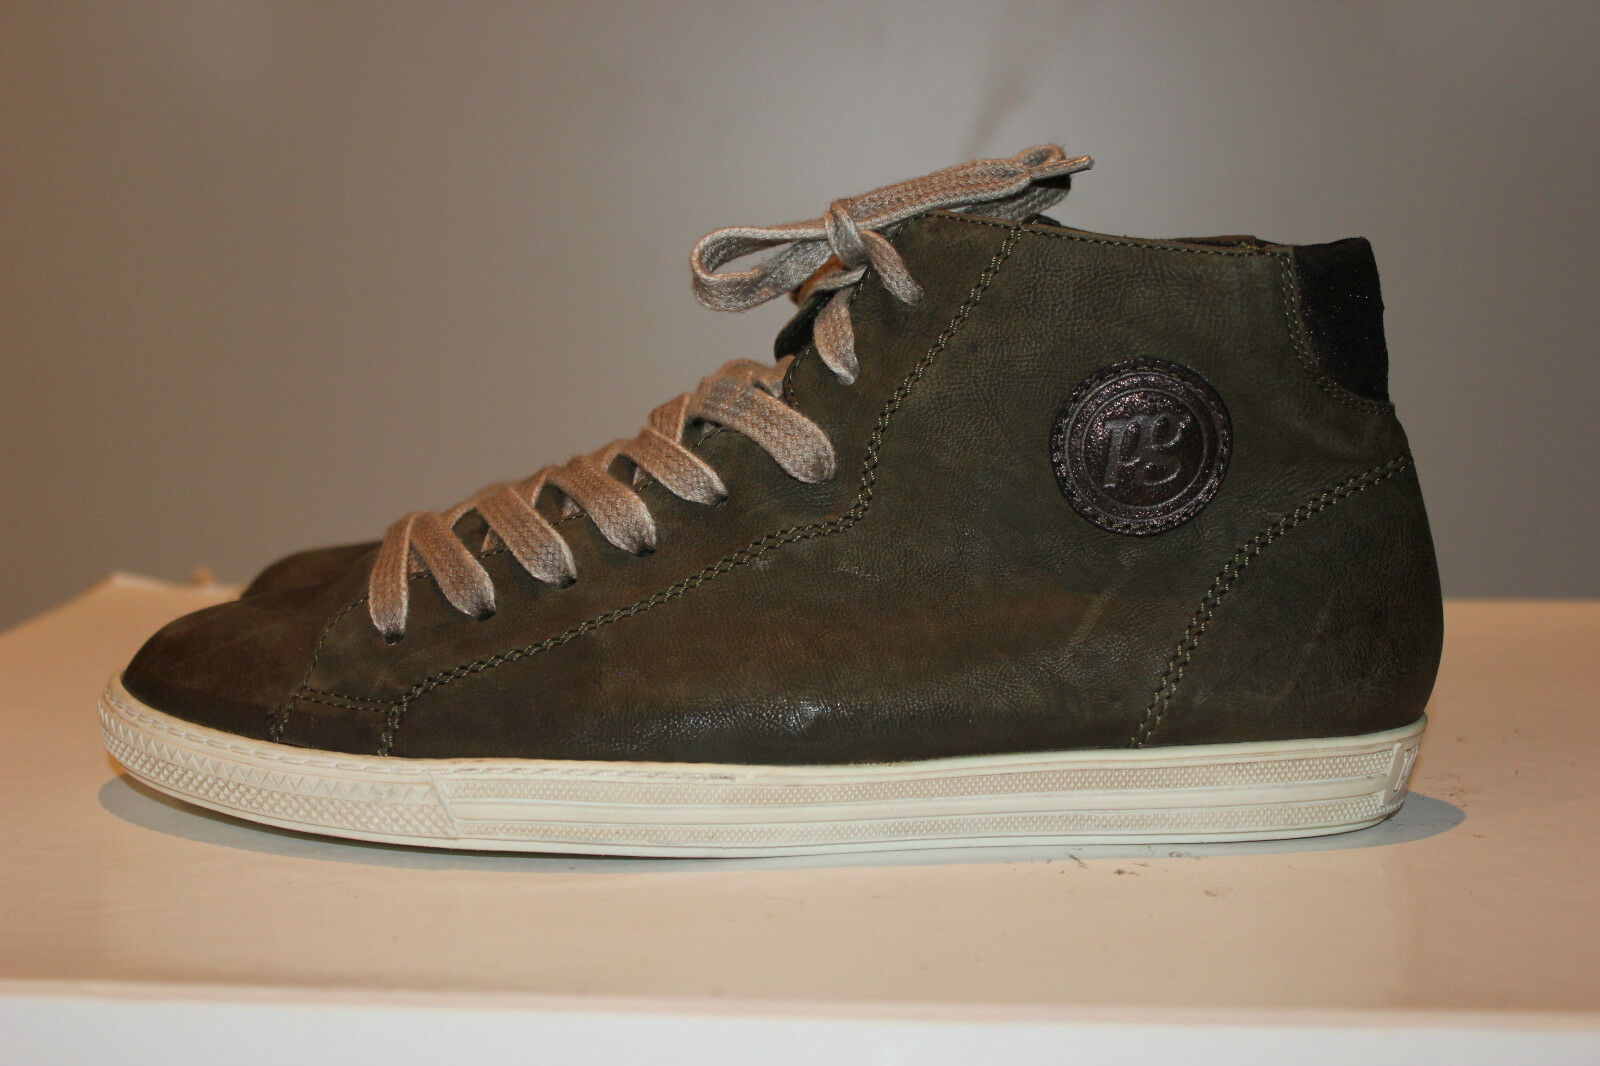 PBUL GREEN Dunkelgrün Echtleder High-Top Sneakers, Gr. 39/UK6,5, Top Zustand!